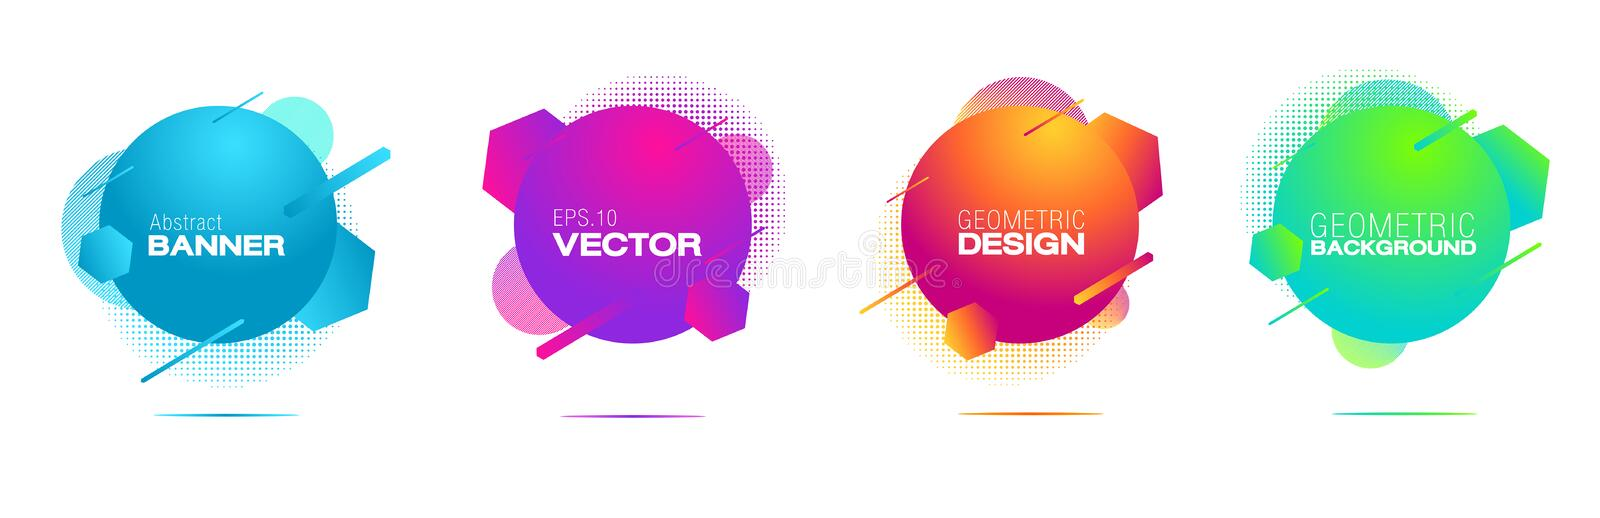 Geometric badges set.Circles, lines and patterns composition stock illustration